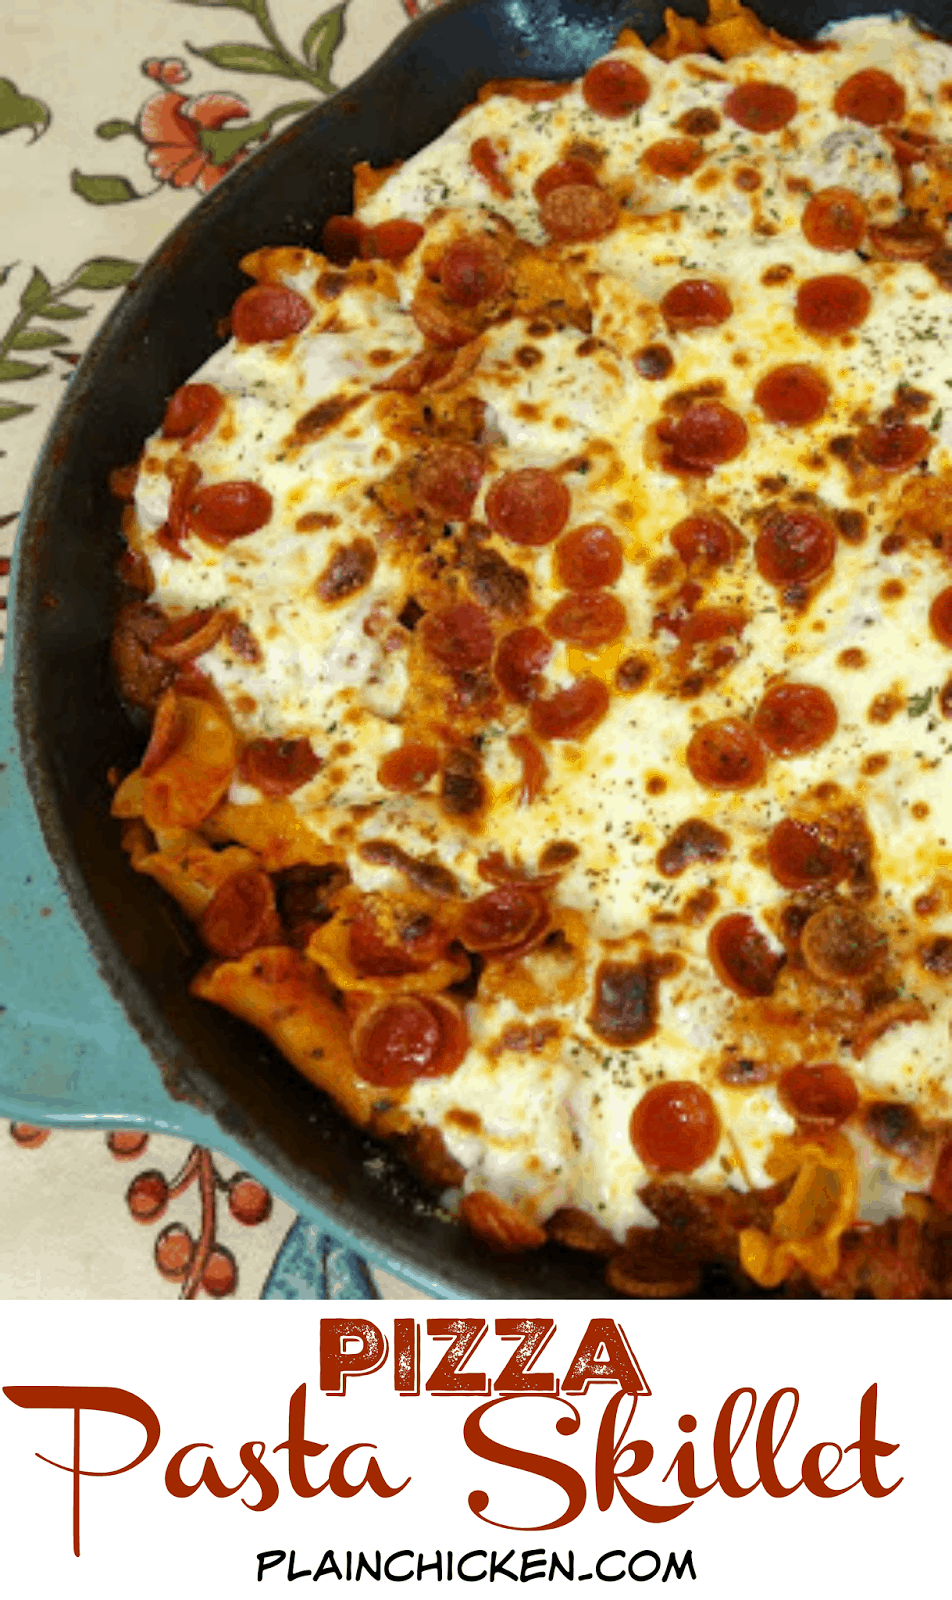 Pizza Pasta Skillet - sausage, pepperoni, mushrooms, pasta, sauce and cheese - ready in 15 minutes! Quick and easy weeknight meal!